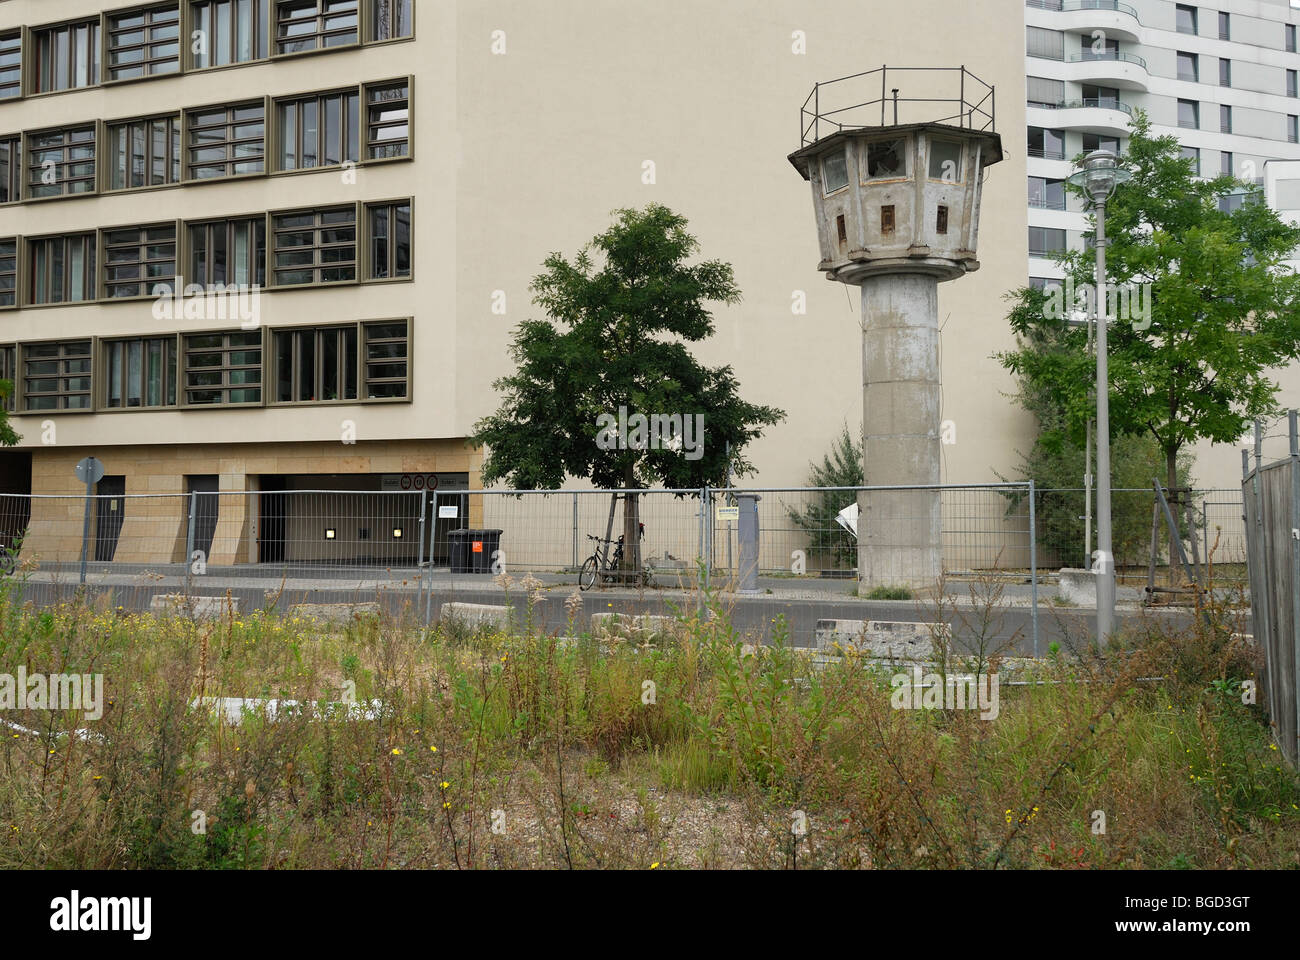 Berlin. Germany. East German watchtower on Erner Berger Strasse just off Potsdamer Platz. - Stock Image